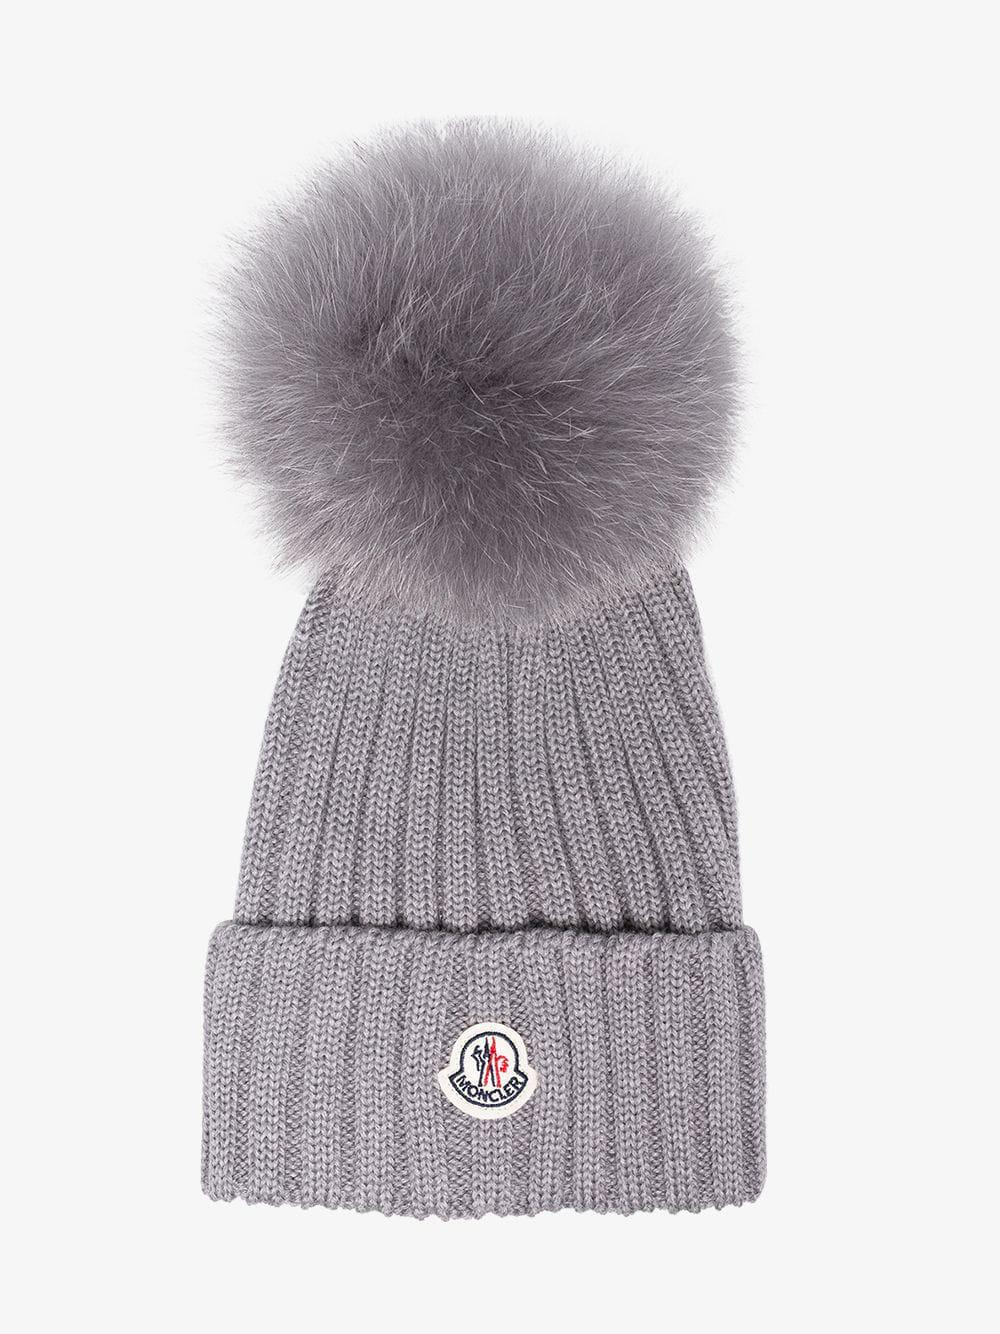 b3c18499e Moncler Grey Wool Beanie Hat With Pom Pom in Gray - Lyst